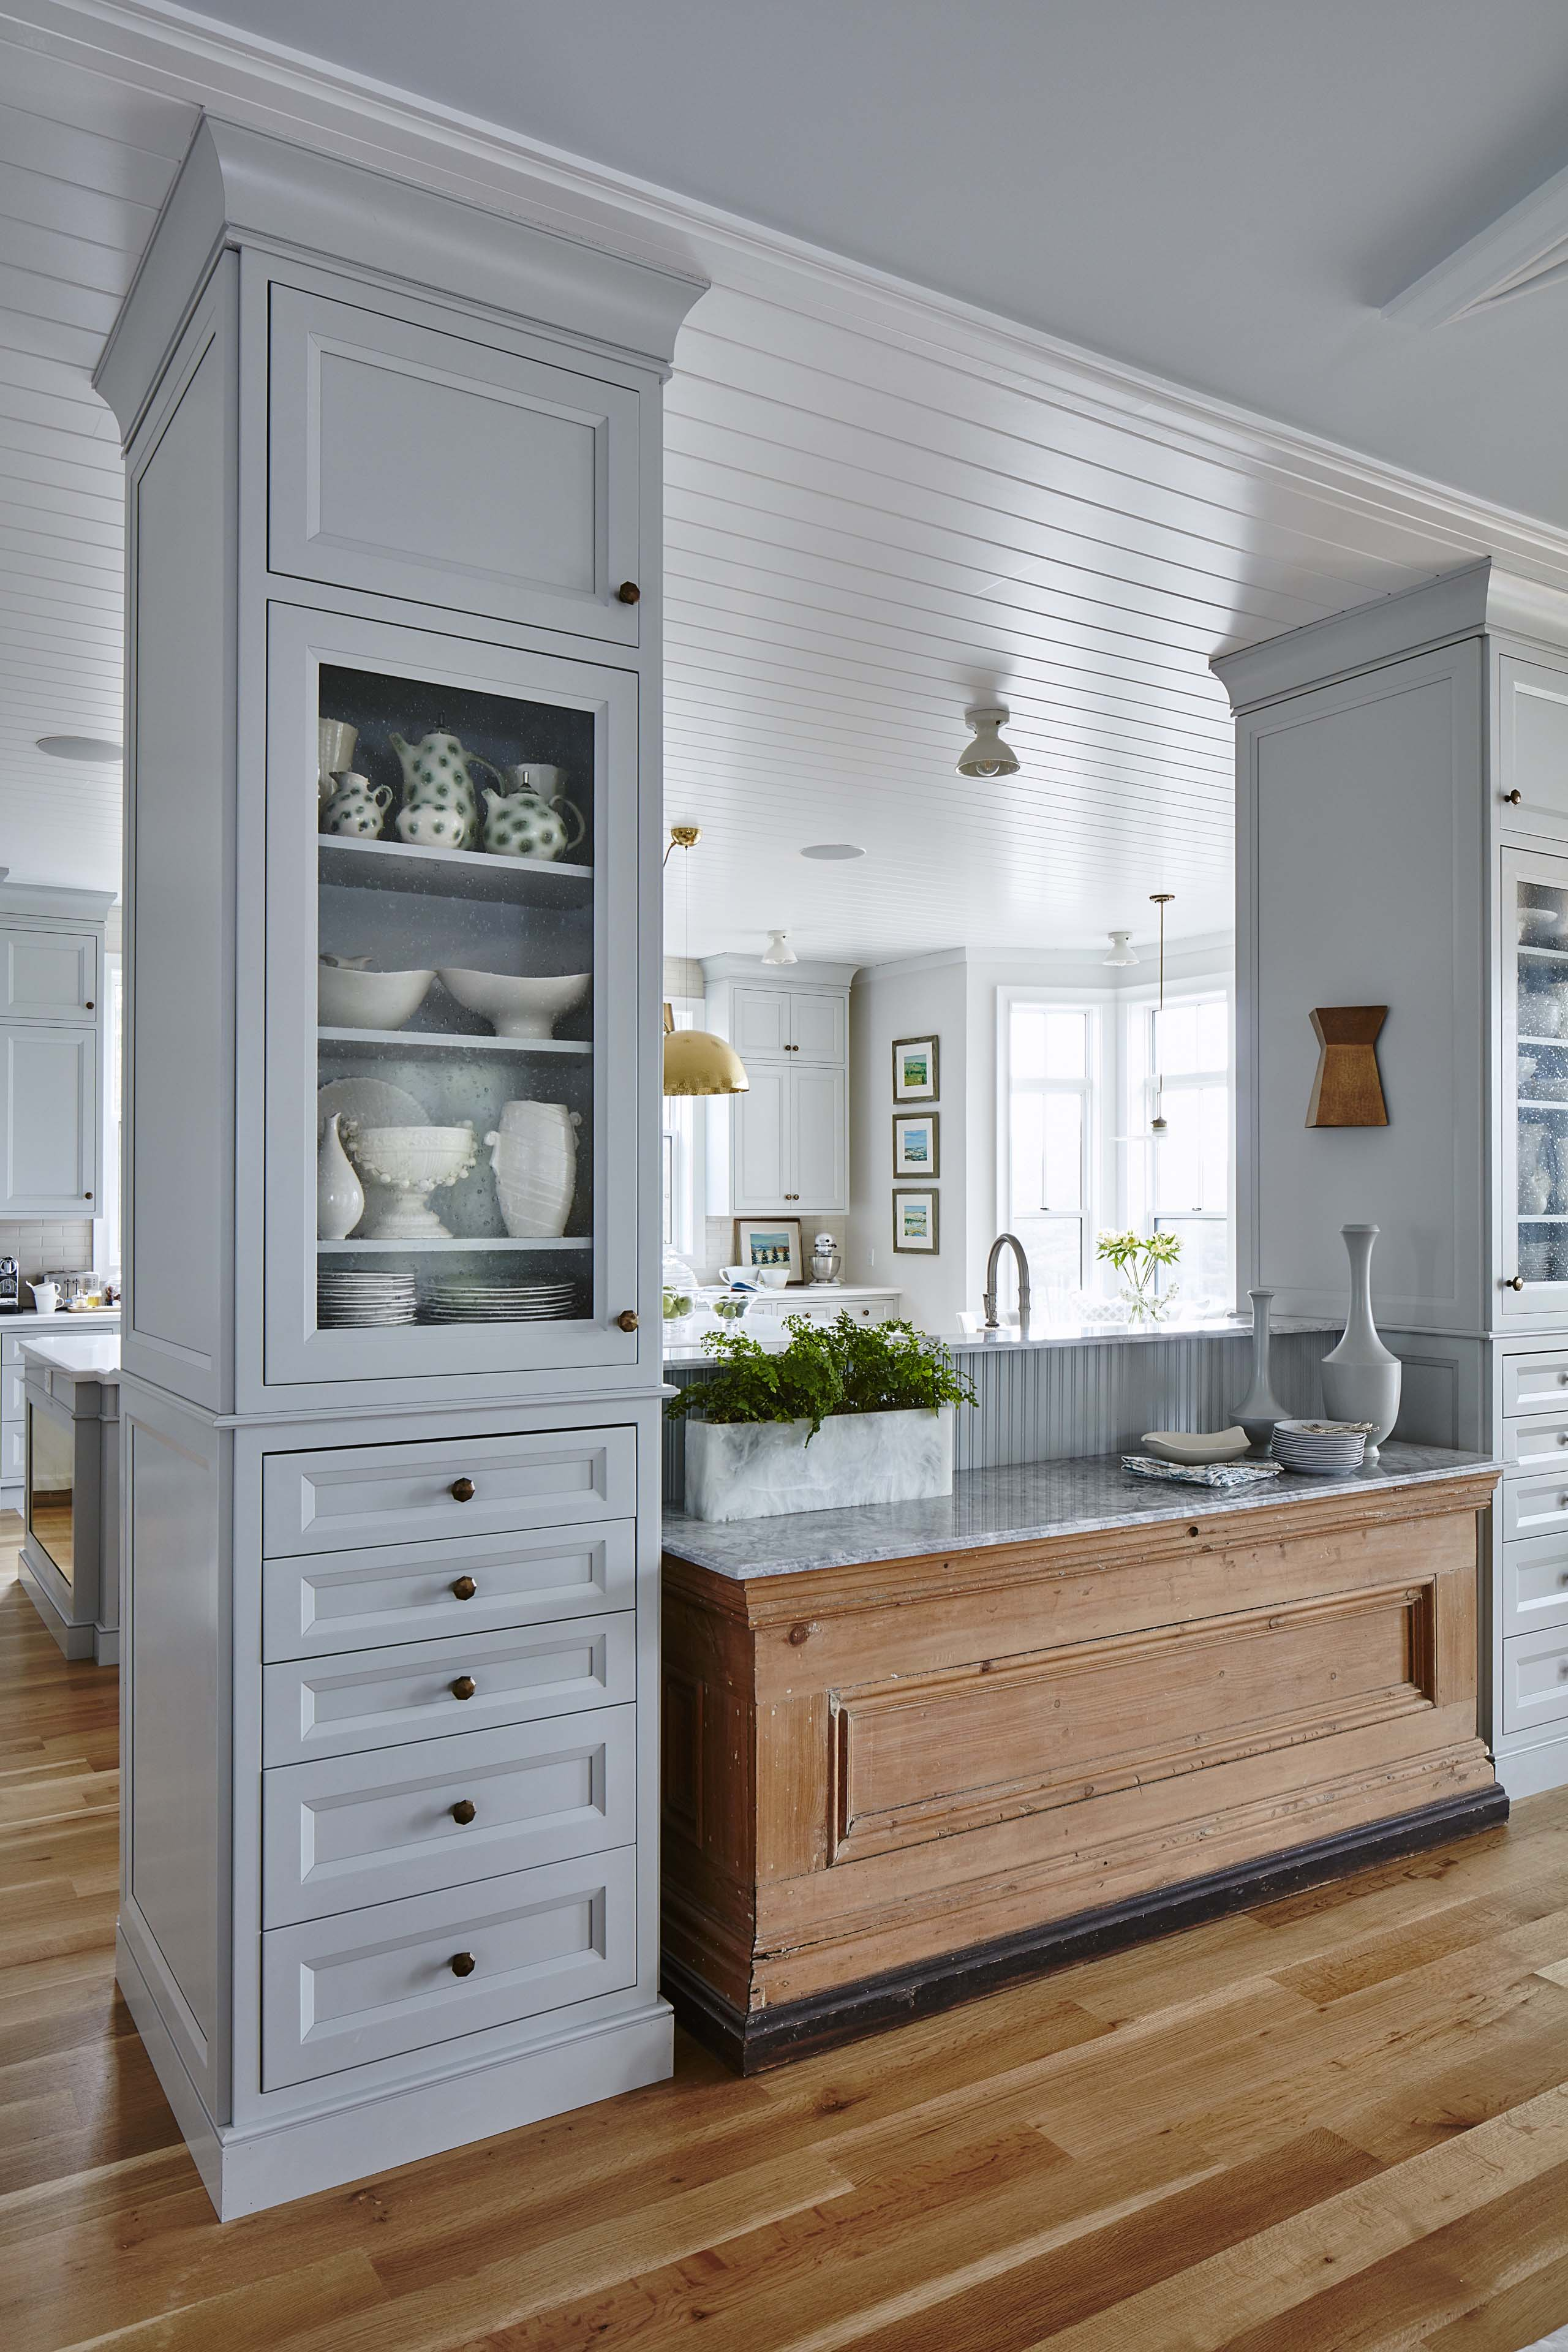 Grey and white modern farmhouse kitchen with built-in cabinets and beadboard ceiling. #SarahRichardson #modernfarmhouse #farmhousekitchen #moderncountry